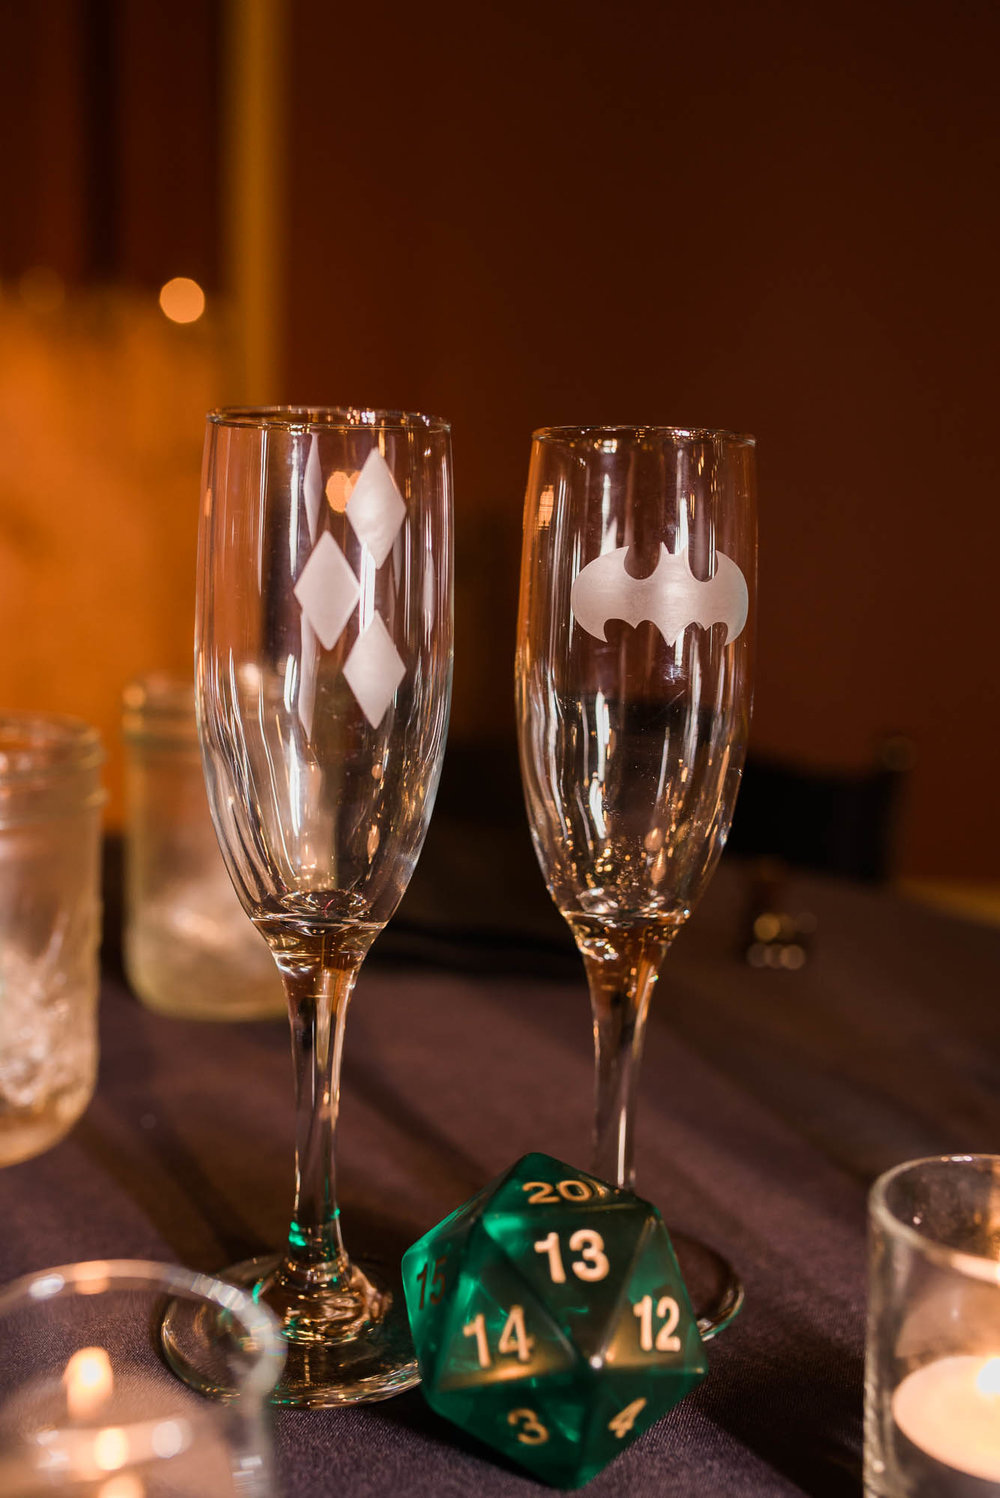 Georgetown Ballroom Wedding with board games, pop culture details and a purple wedding dress.  Champagne wedding glasses for bride and groom with batman and harley quinn logo